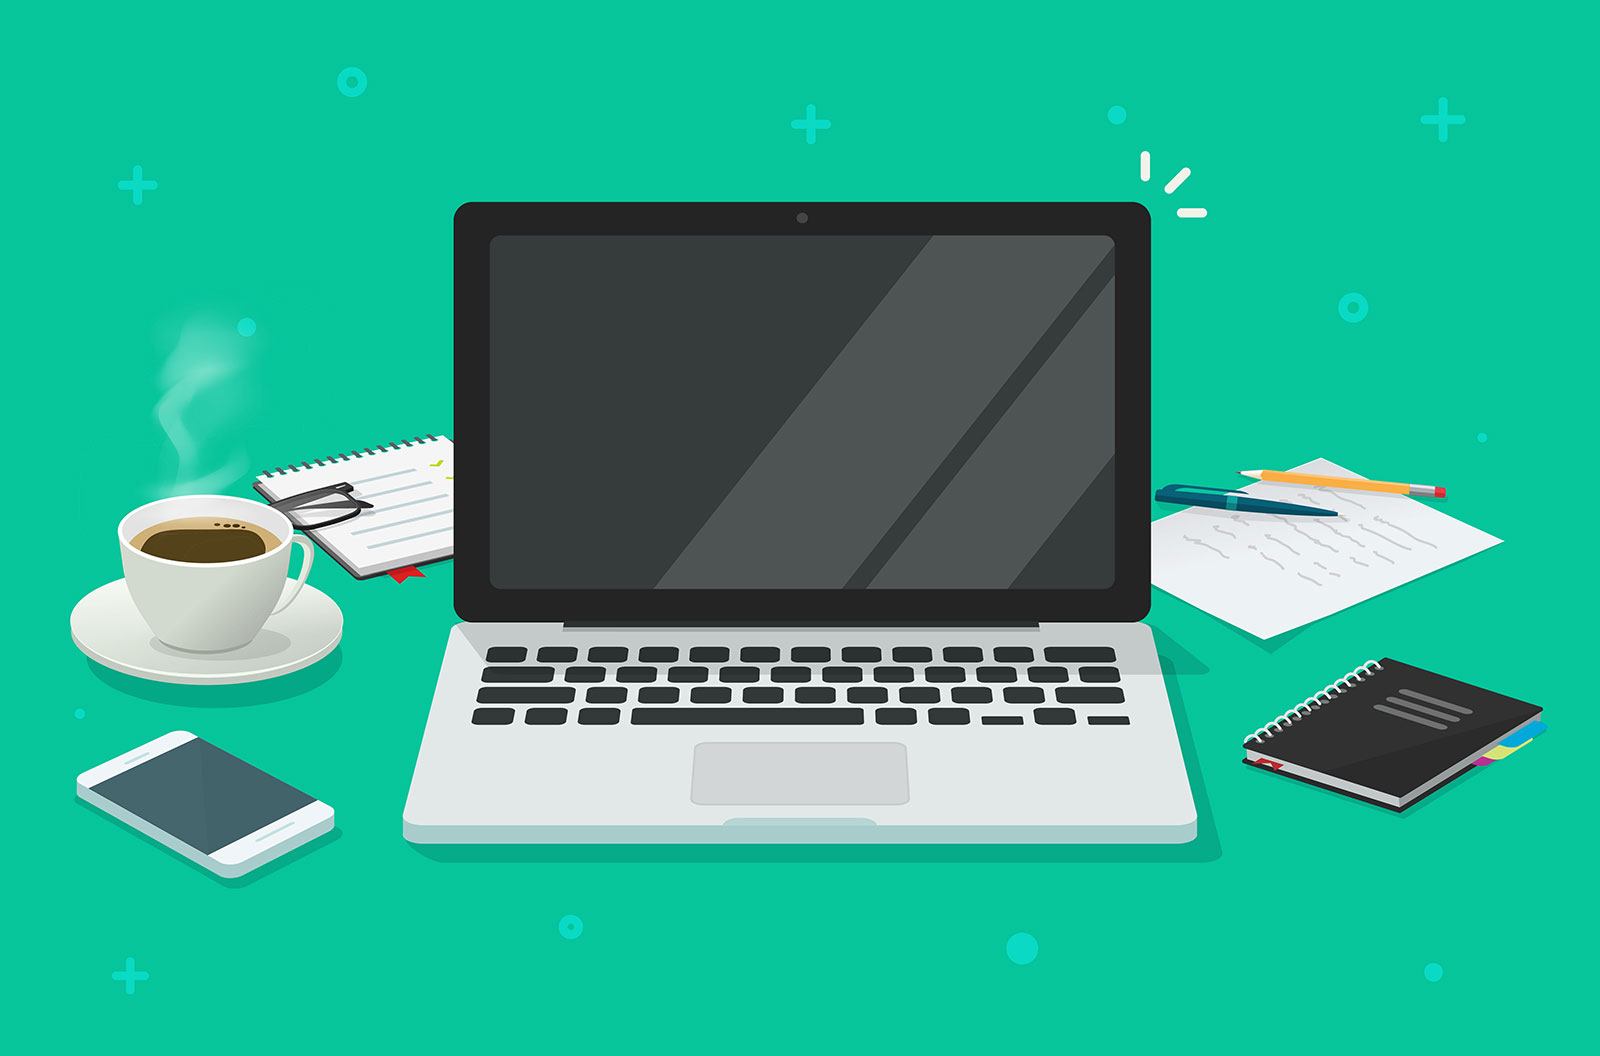 vector illustration of computer laptop with blank empty screen